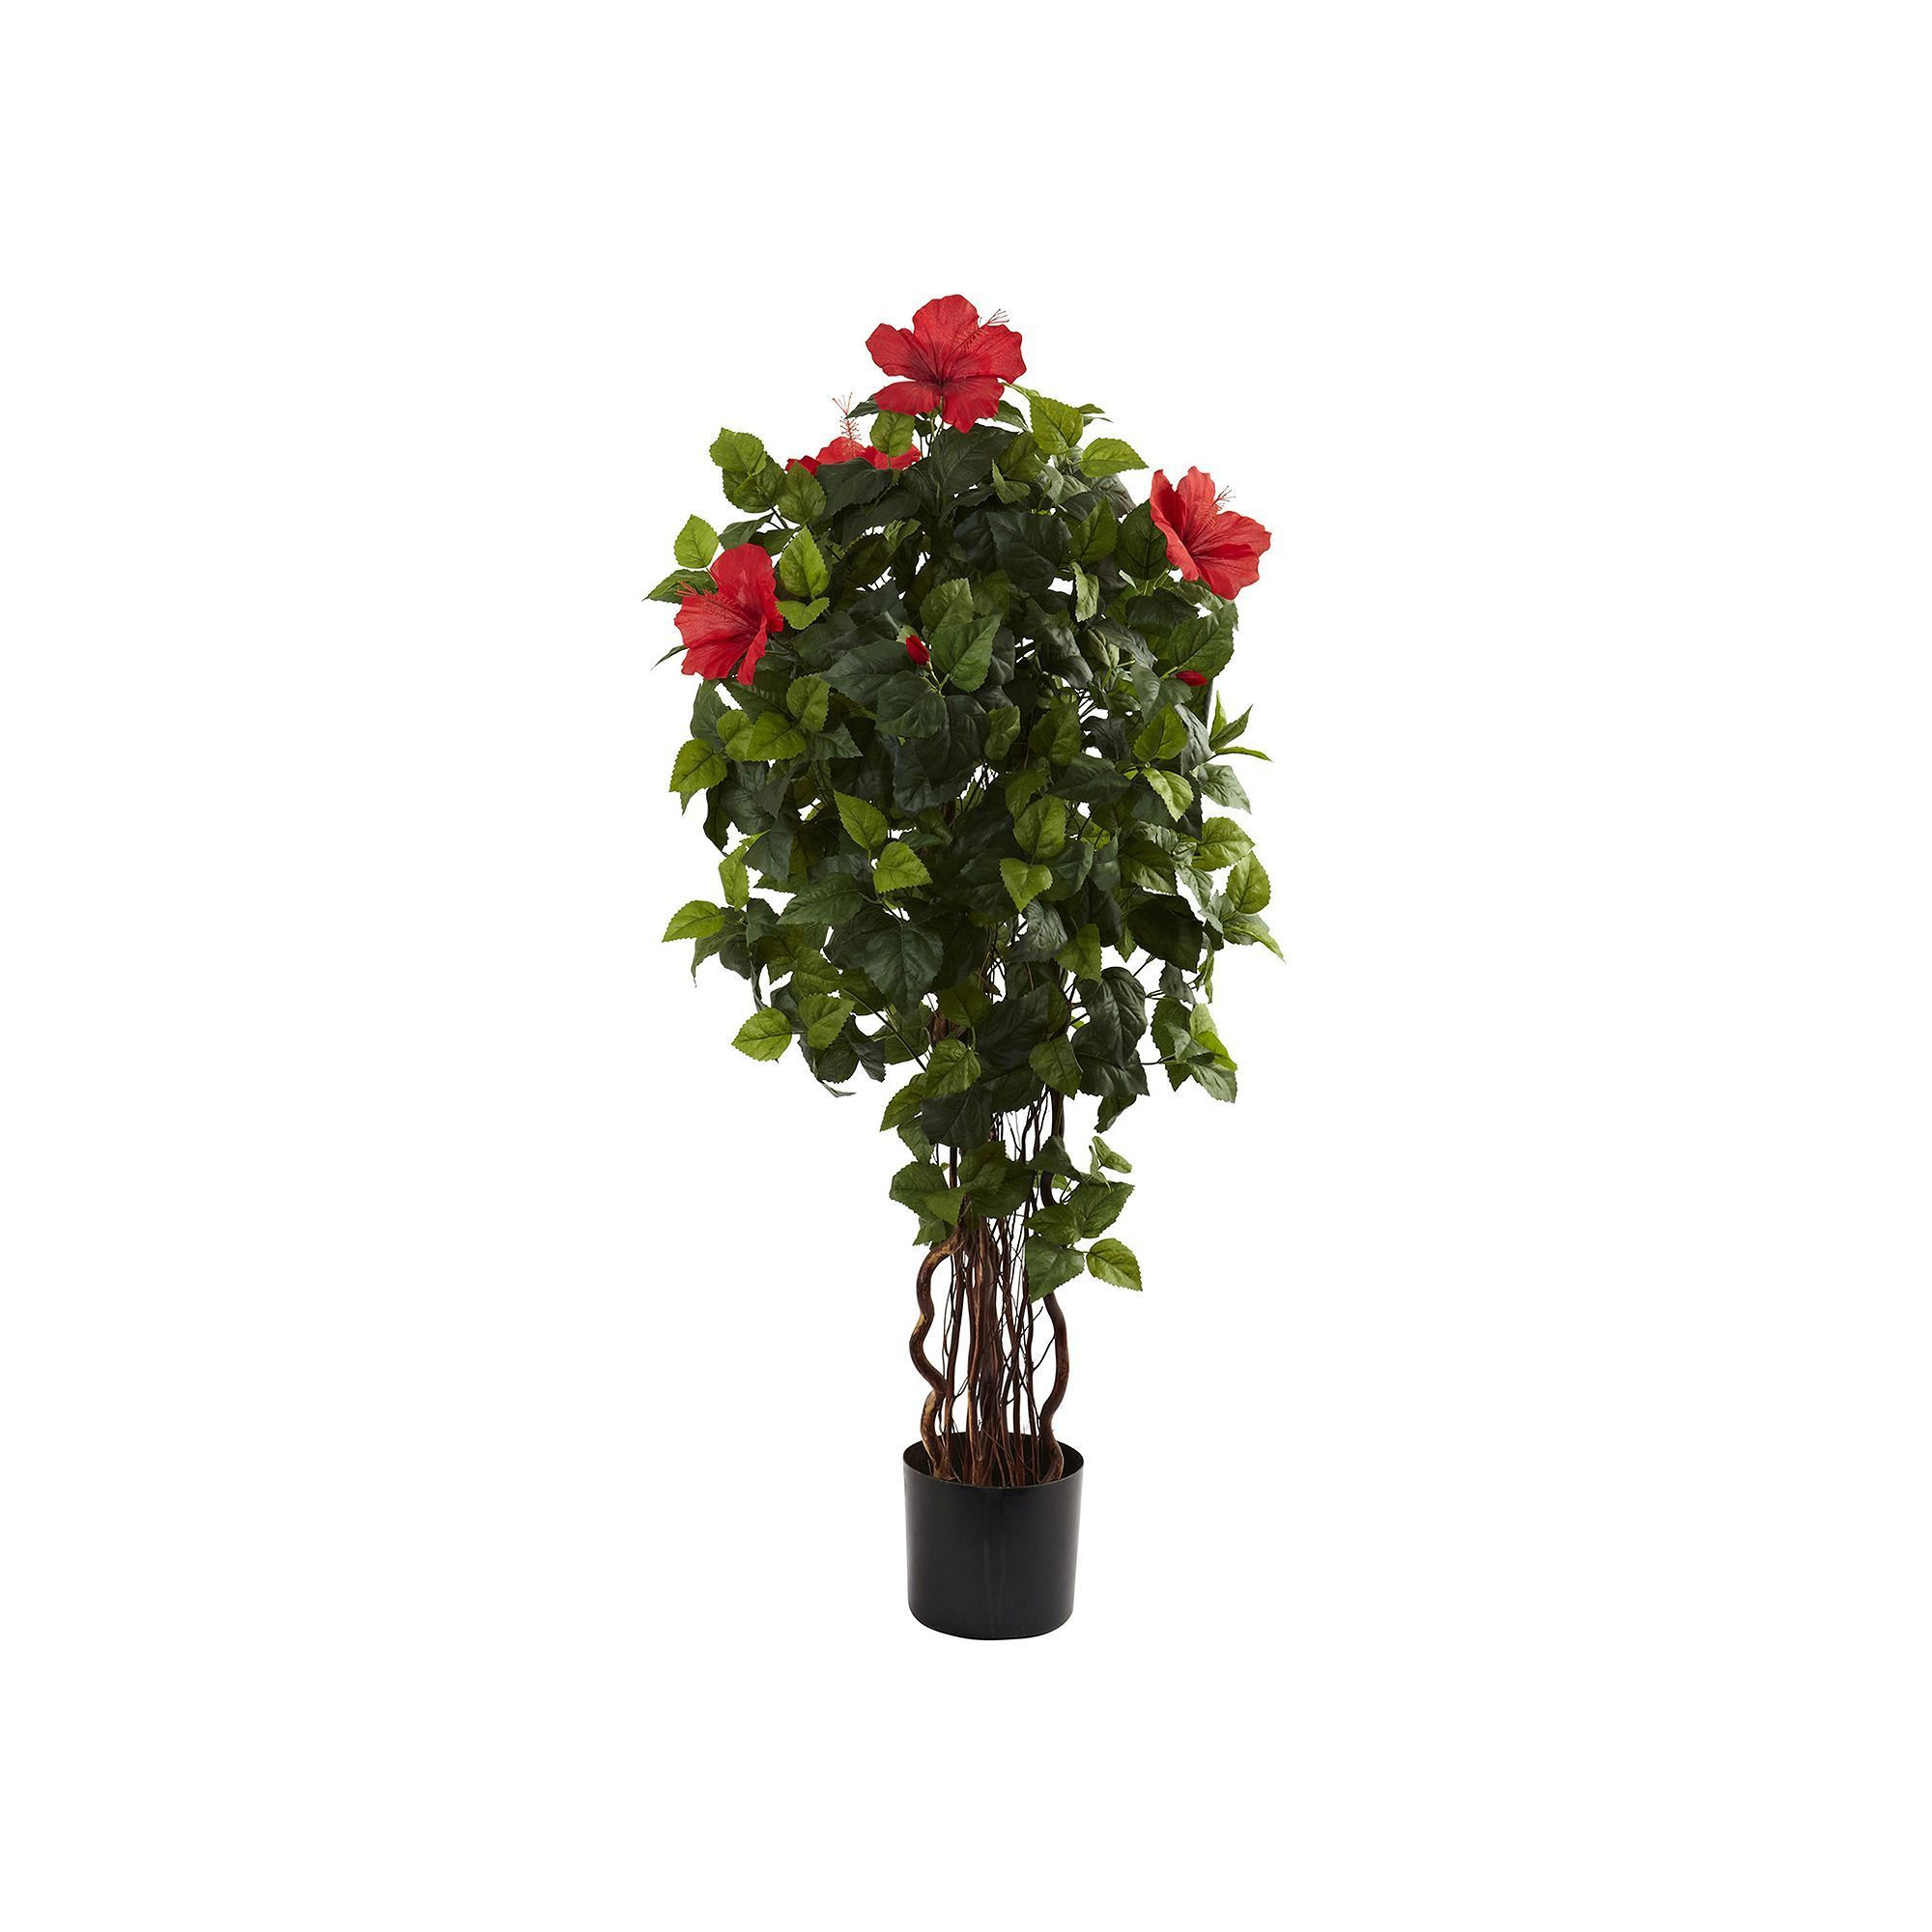 Potted Hibiscus Tree